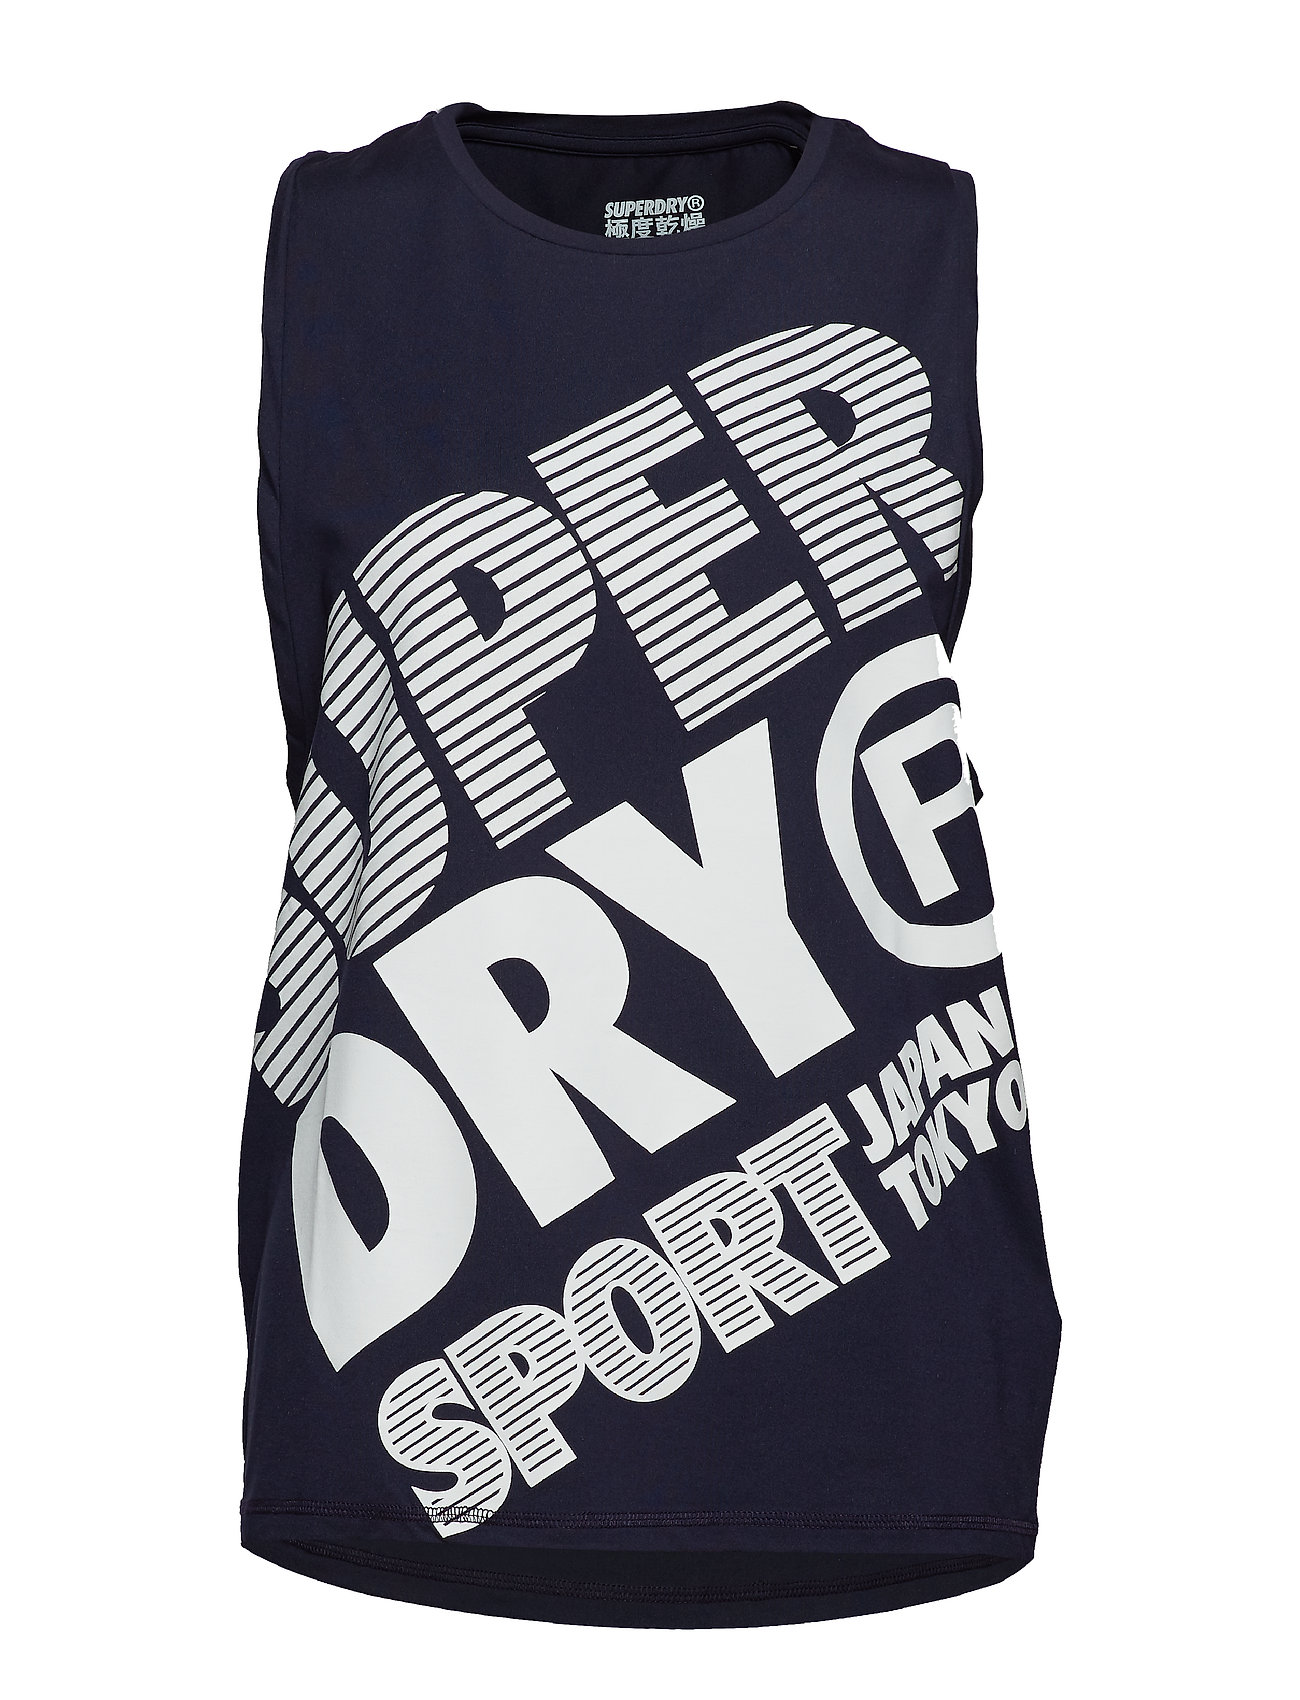 Superdry Sport JAPAN EDITION LAZER VEST - FLASH NAVY